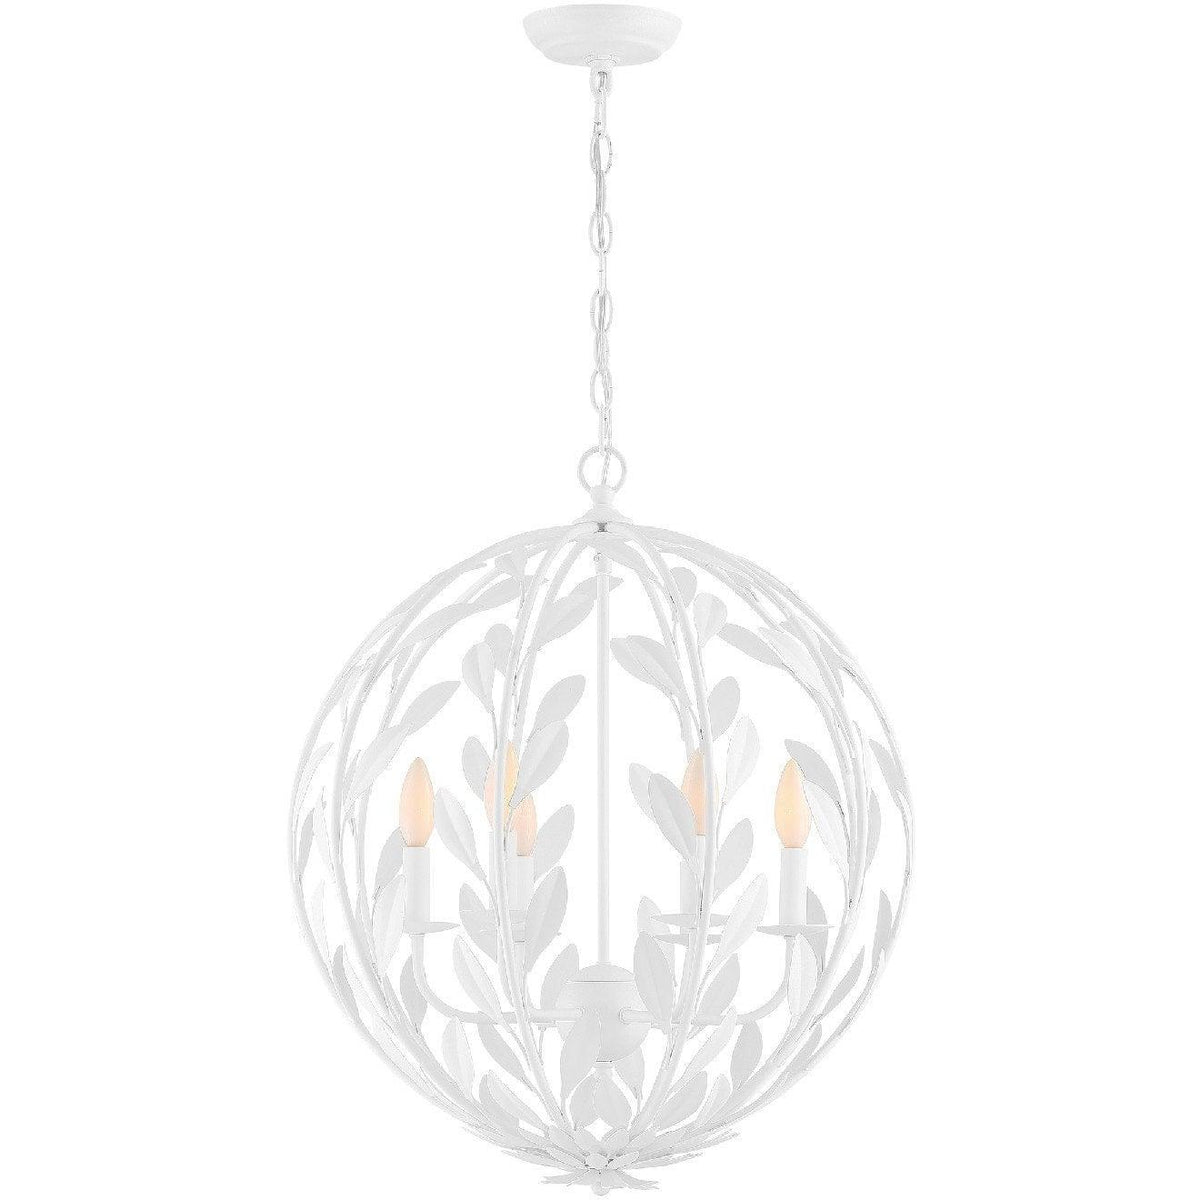 Crystorama - 506-MT - Six Light Chandelier - Broche - Matte White